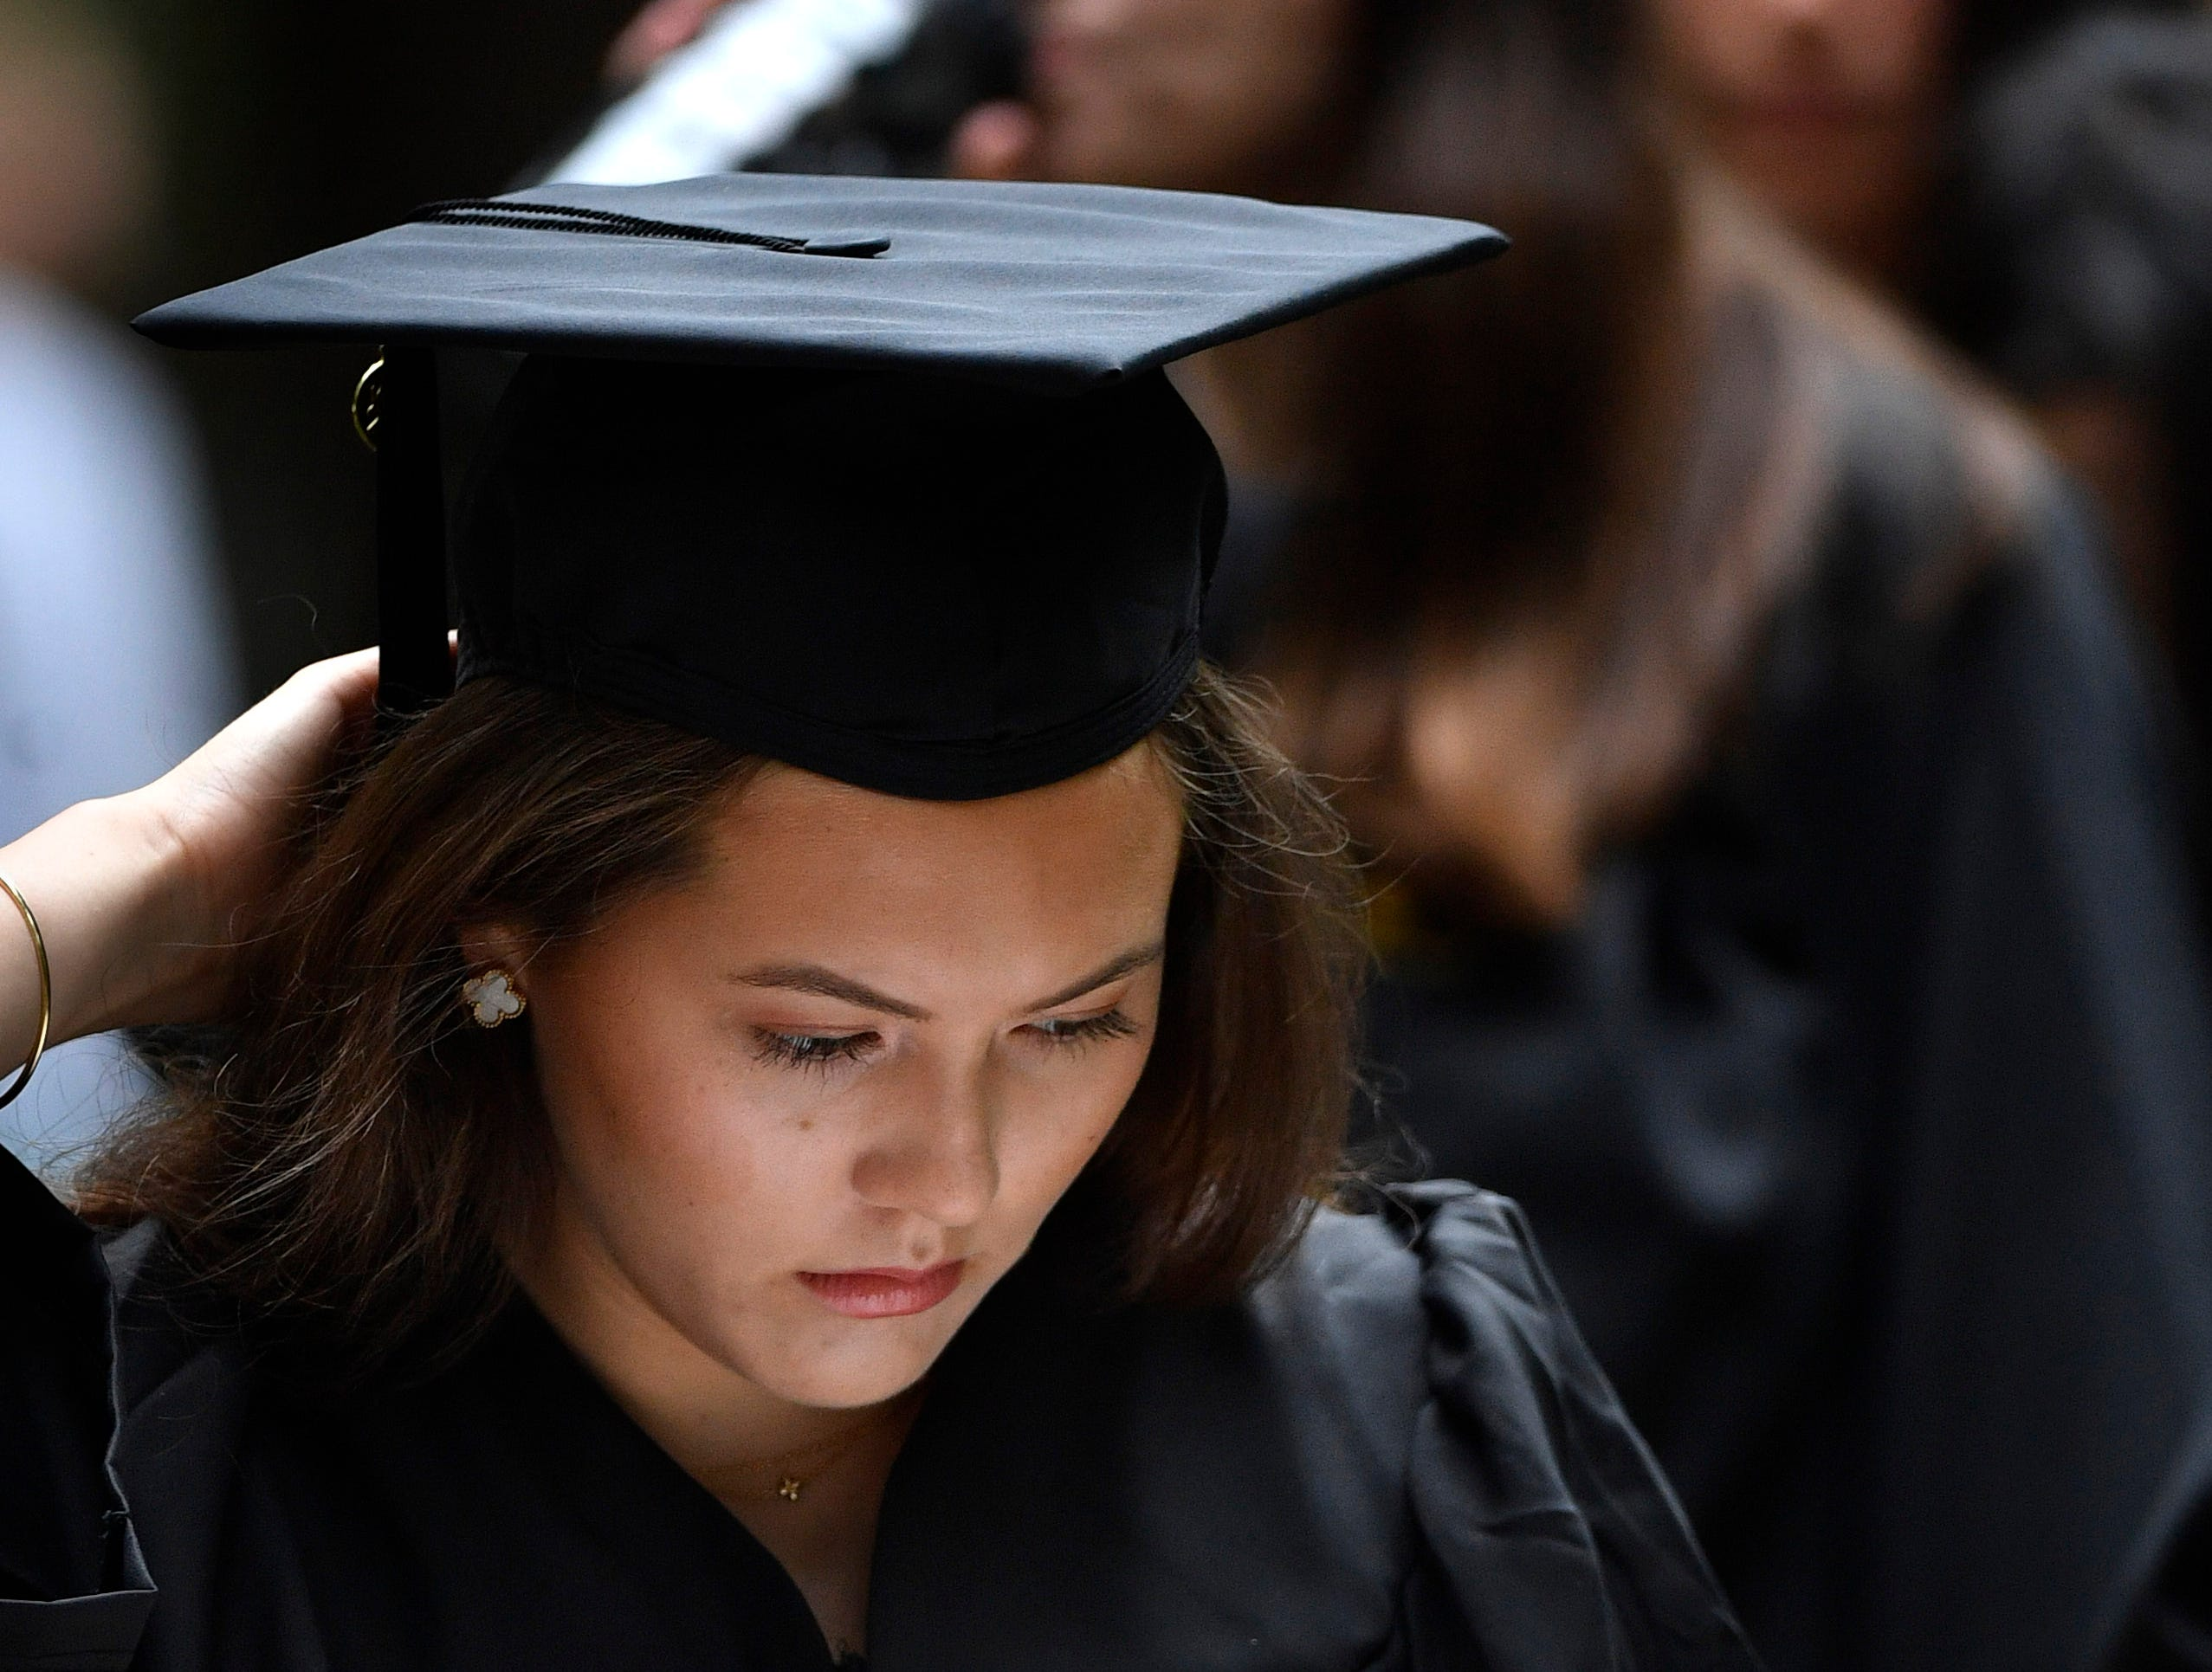 Elizabeth Horner reads the program as she waits for the start of Vanderbilt University graduation Friday, May 10, 2019, in Nashville, Tenn.